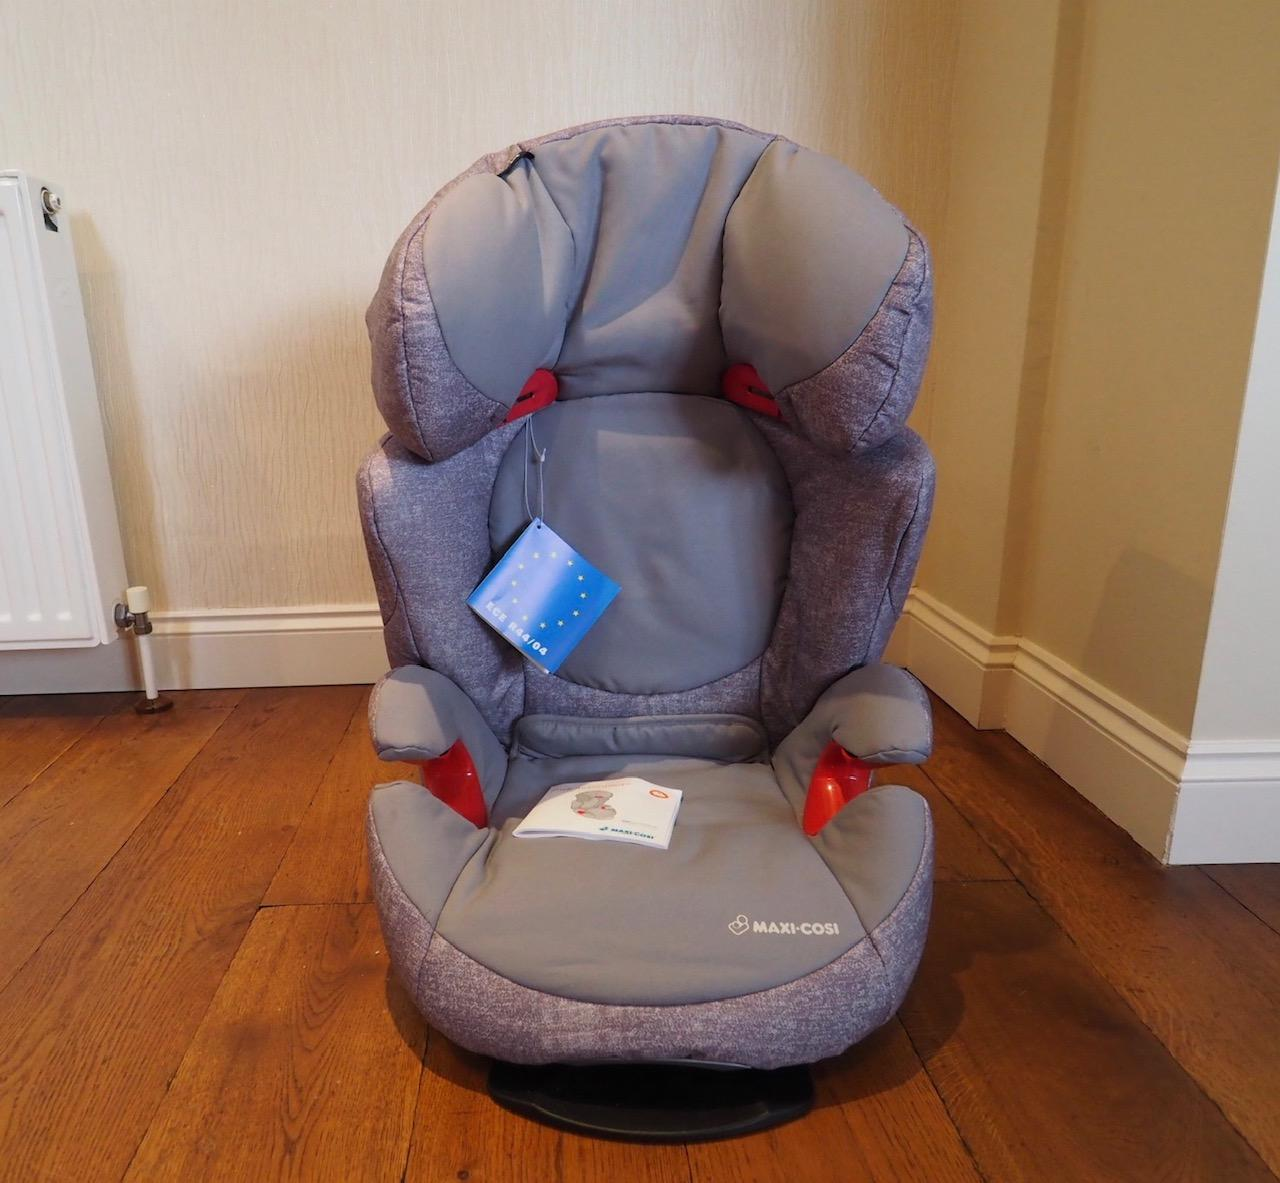 the maxi-cosi Rodi Air Protect car seat in nomad grey prior to installation